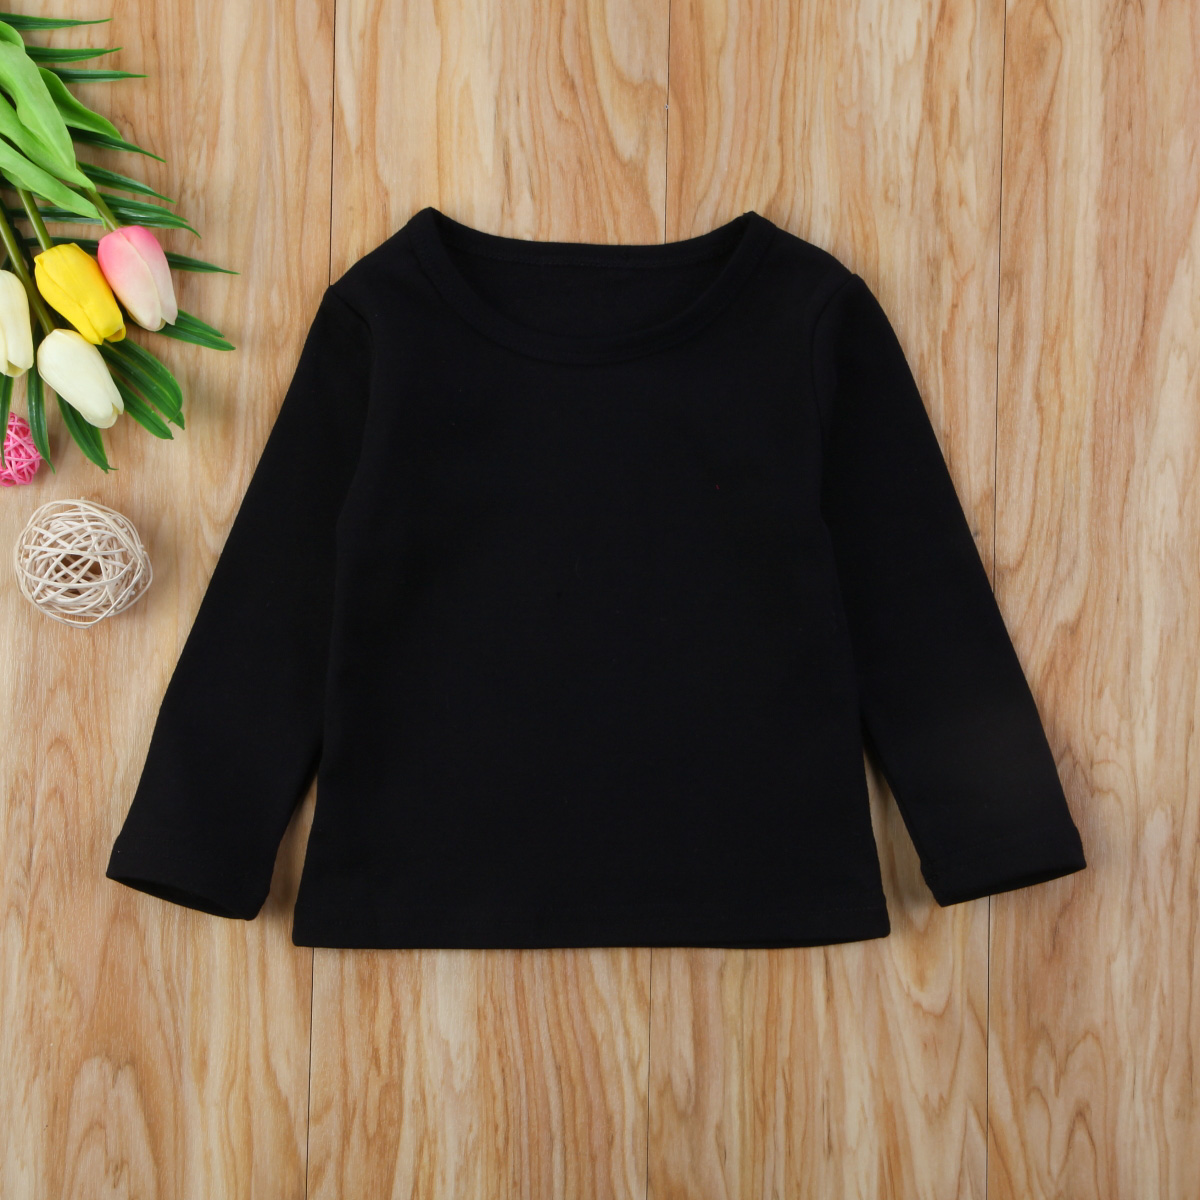 Autumn Cotton Newborn Infant Kids Baby Boys Girls Clothes Solid Cotton Soft Clothing Long Sleeves T-shirt Tops 9